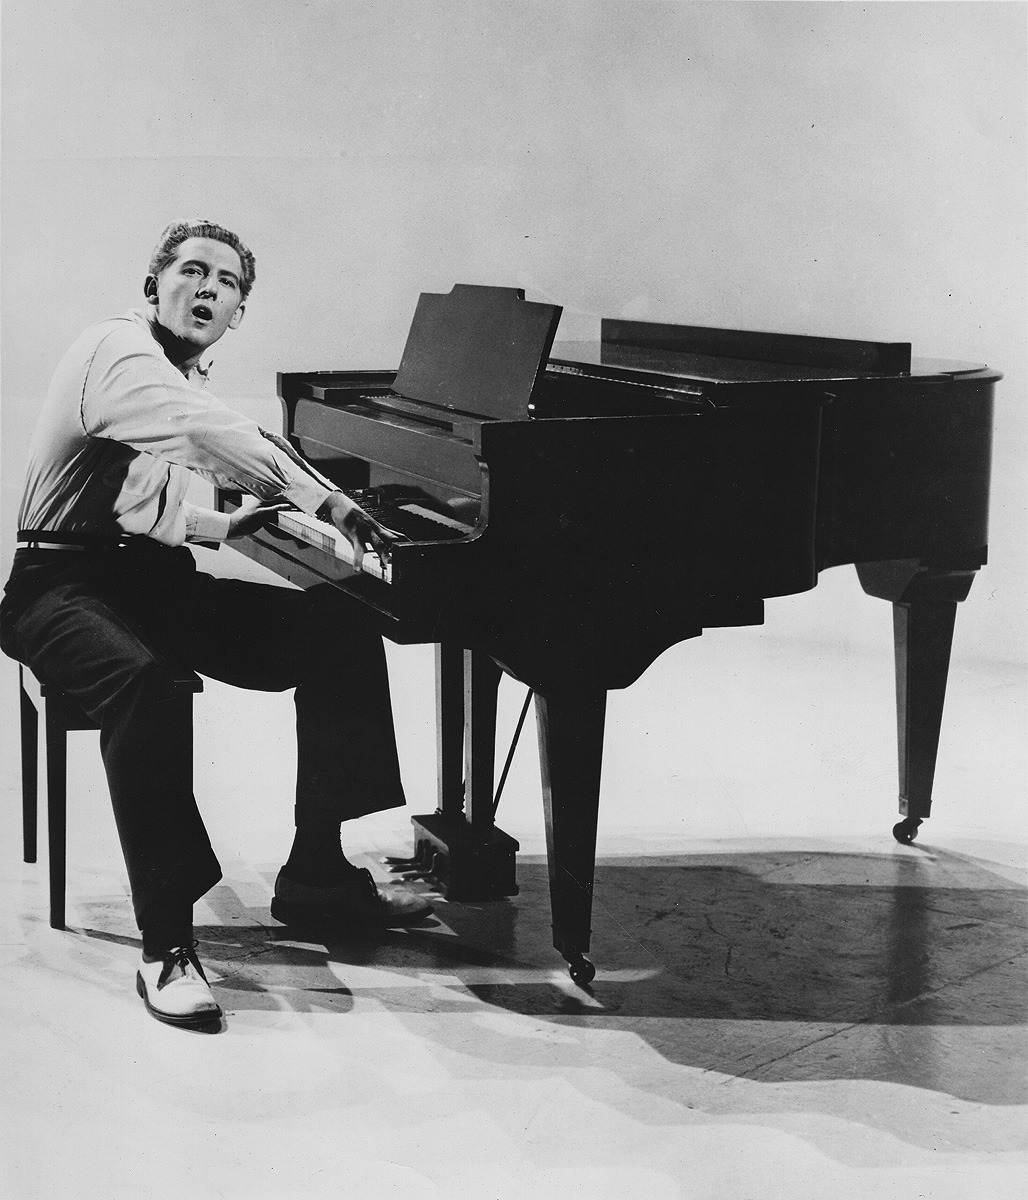 http://static.tvtropes.org/pmwiki/pub/images/jerry_lee_lewis.jpg